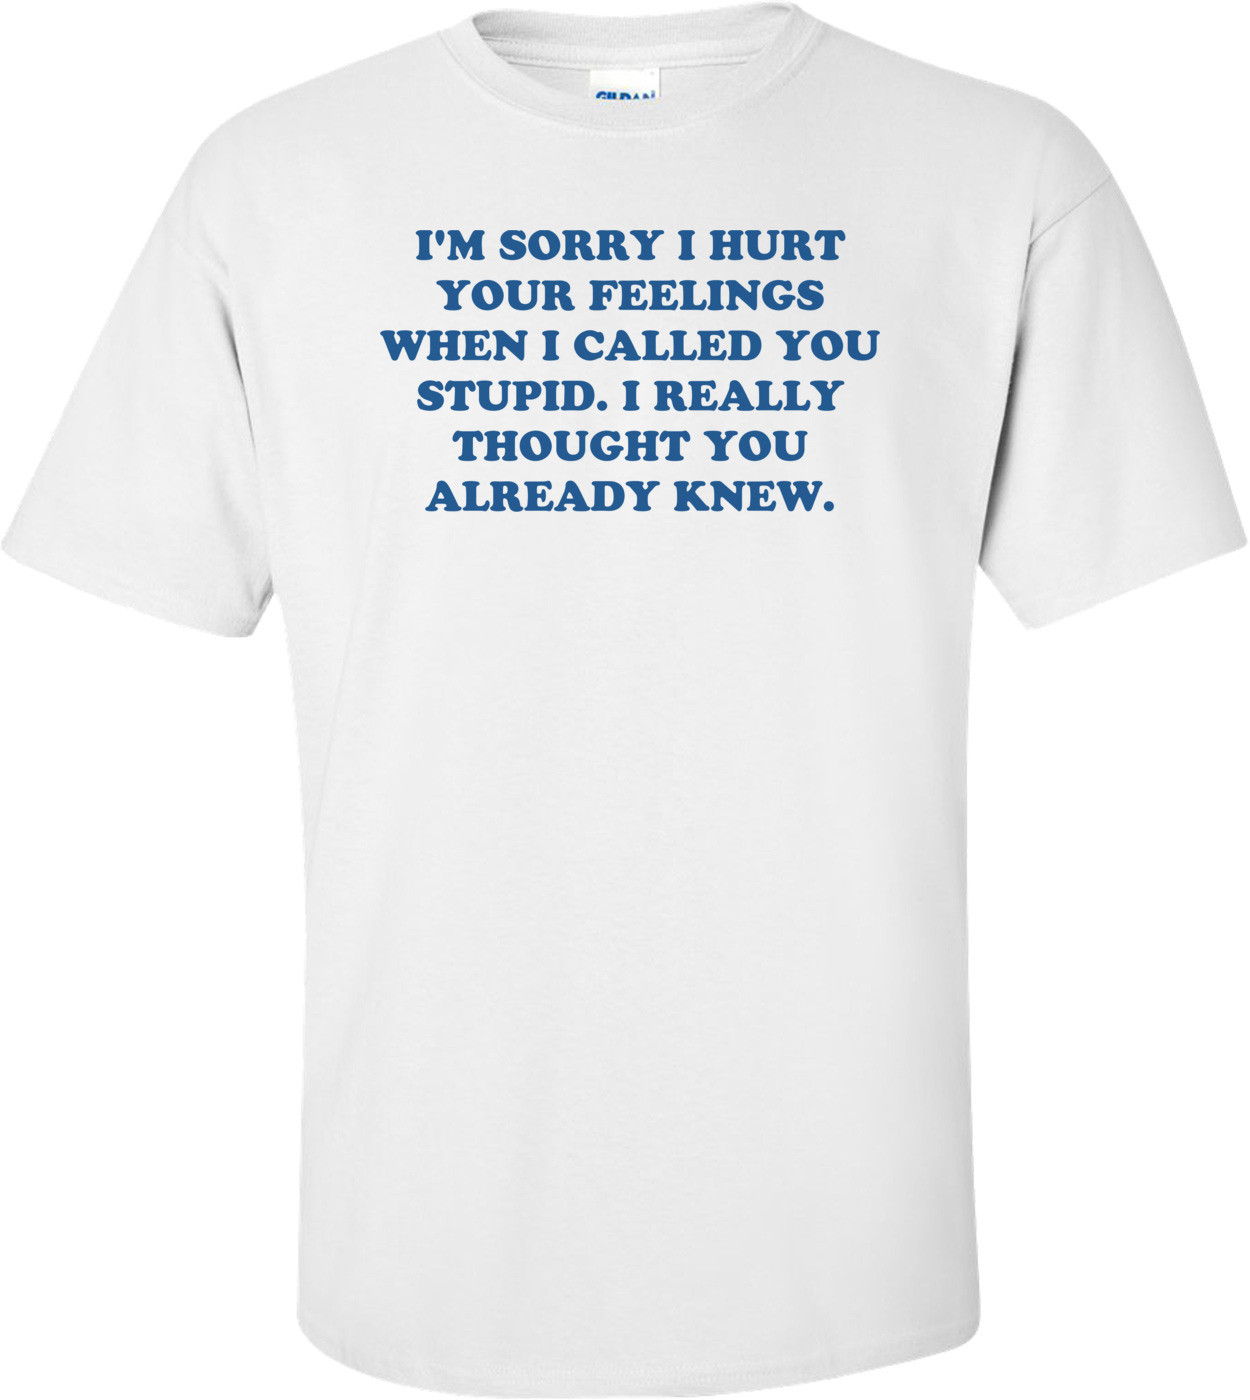 I'M SORRY I HURT YOUR FEELINGS WHEN I CALLED YOU STUPID. I REALLY THOUGHT YOU ALREADY KNEW. Shirt